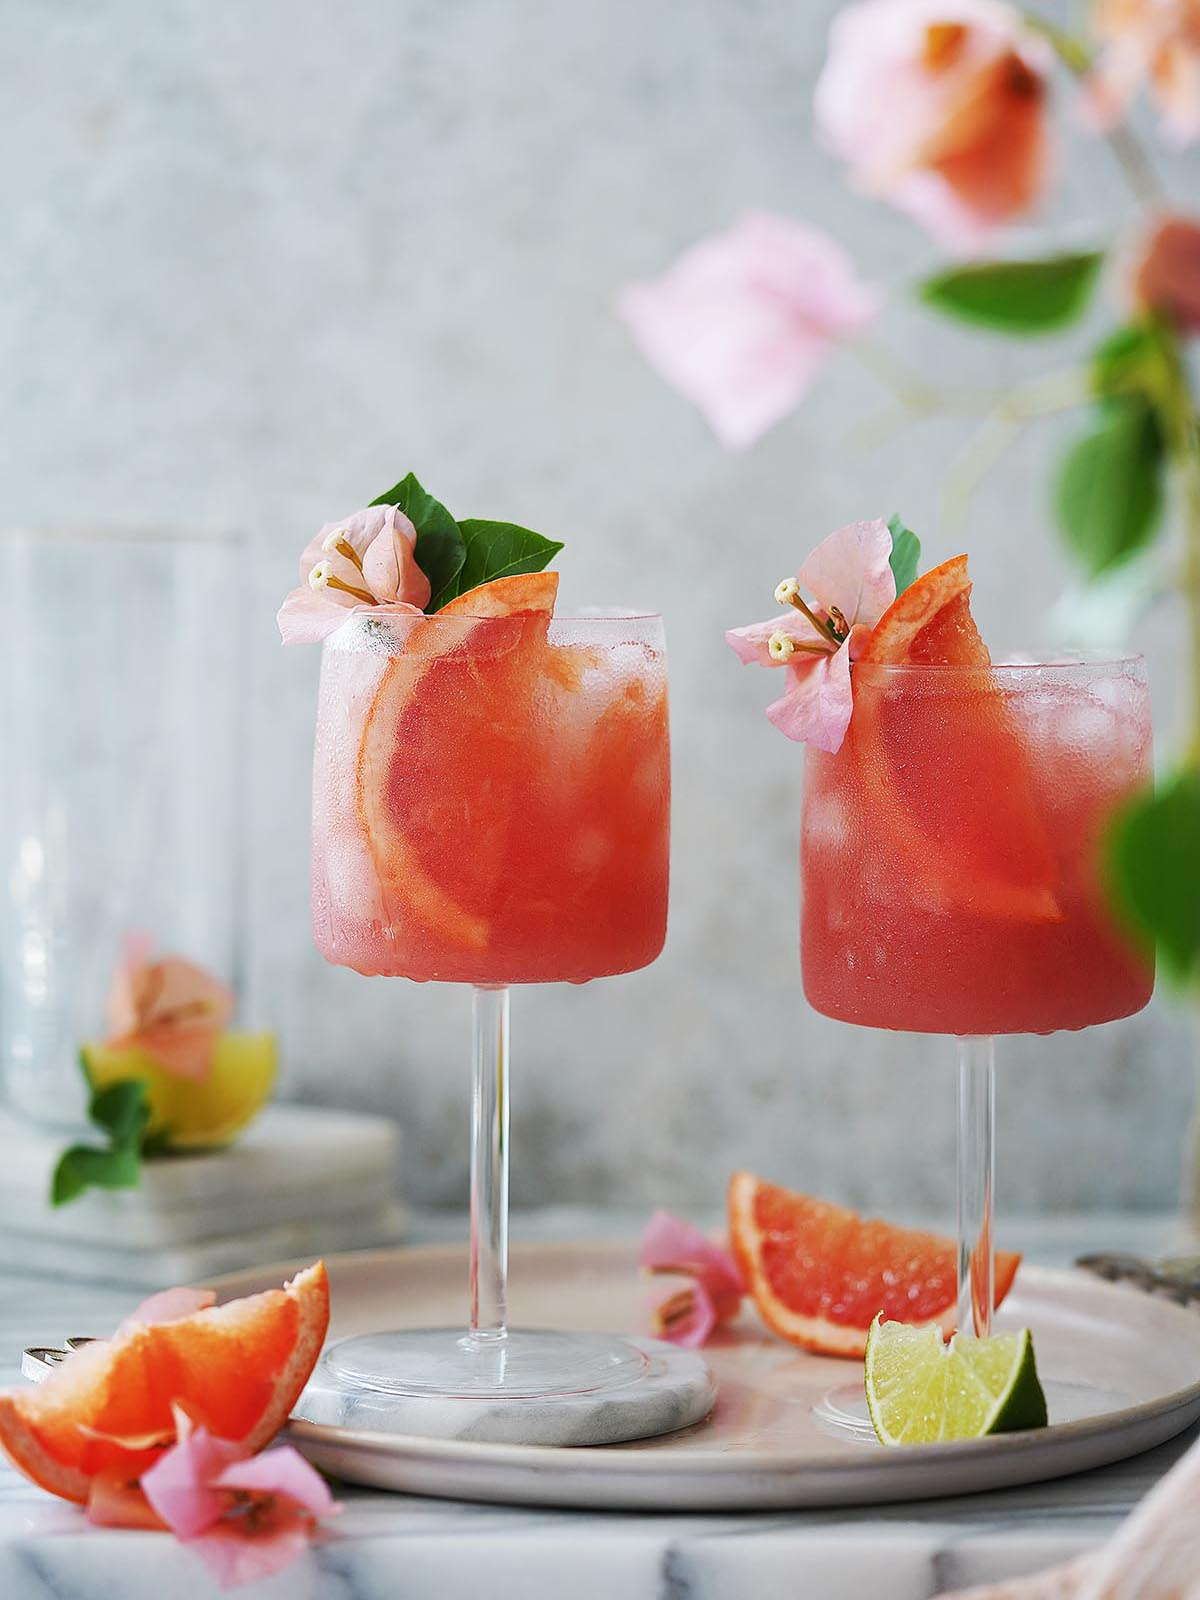 two glasses filled with an orange drink and garnished with slices of grapefruit.